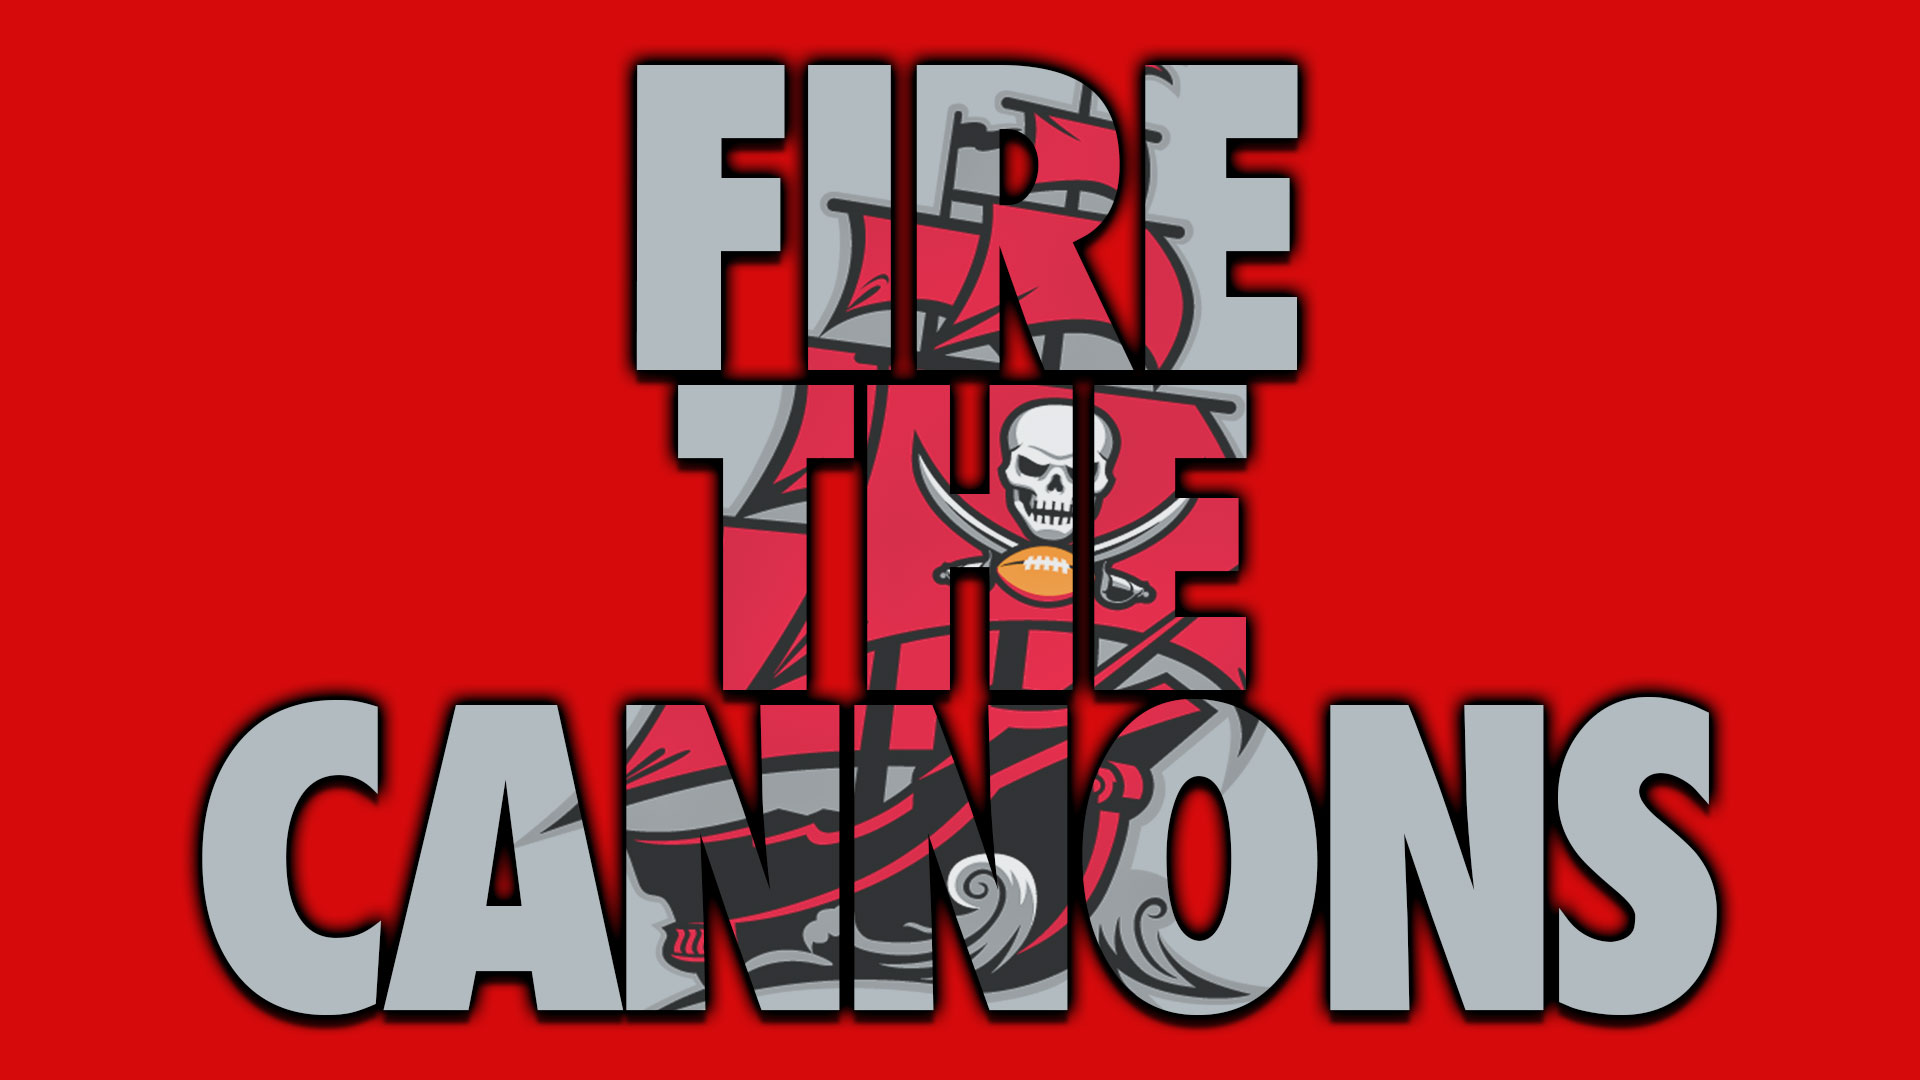 Fire The Cannons Nflhc09 Career With The Tampa Bay Buccaneers Operation Sports Forums